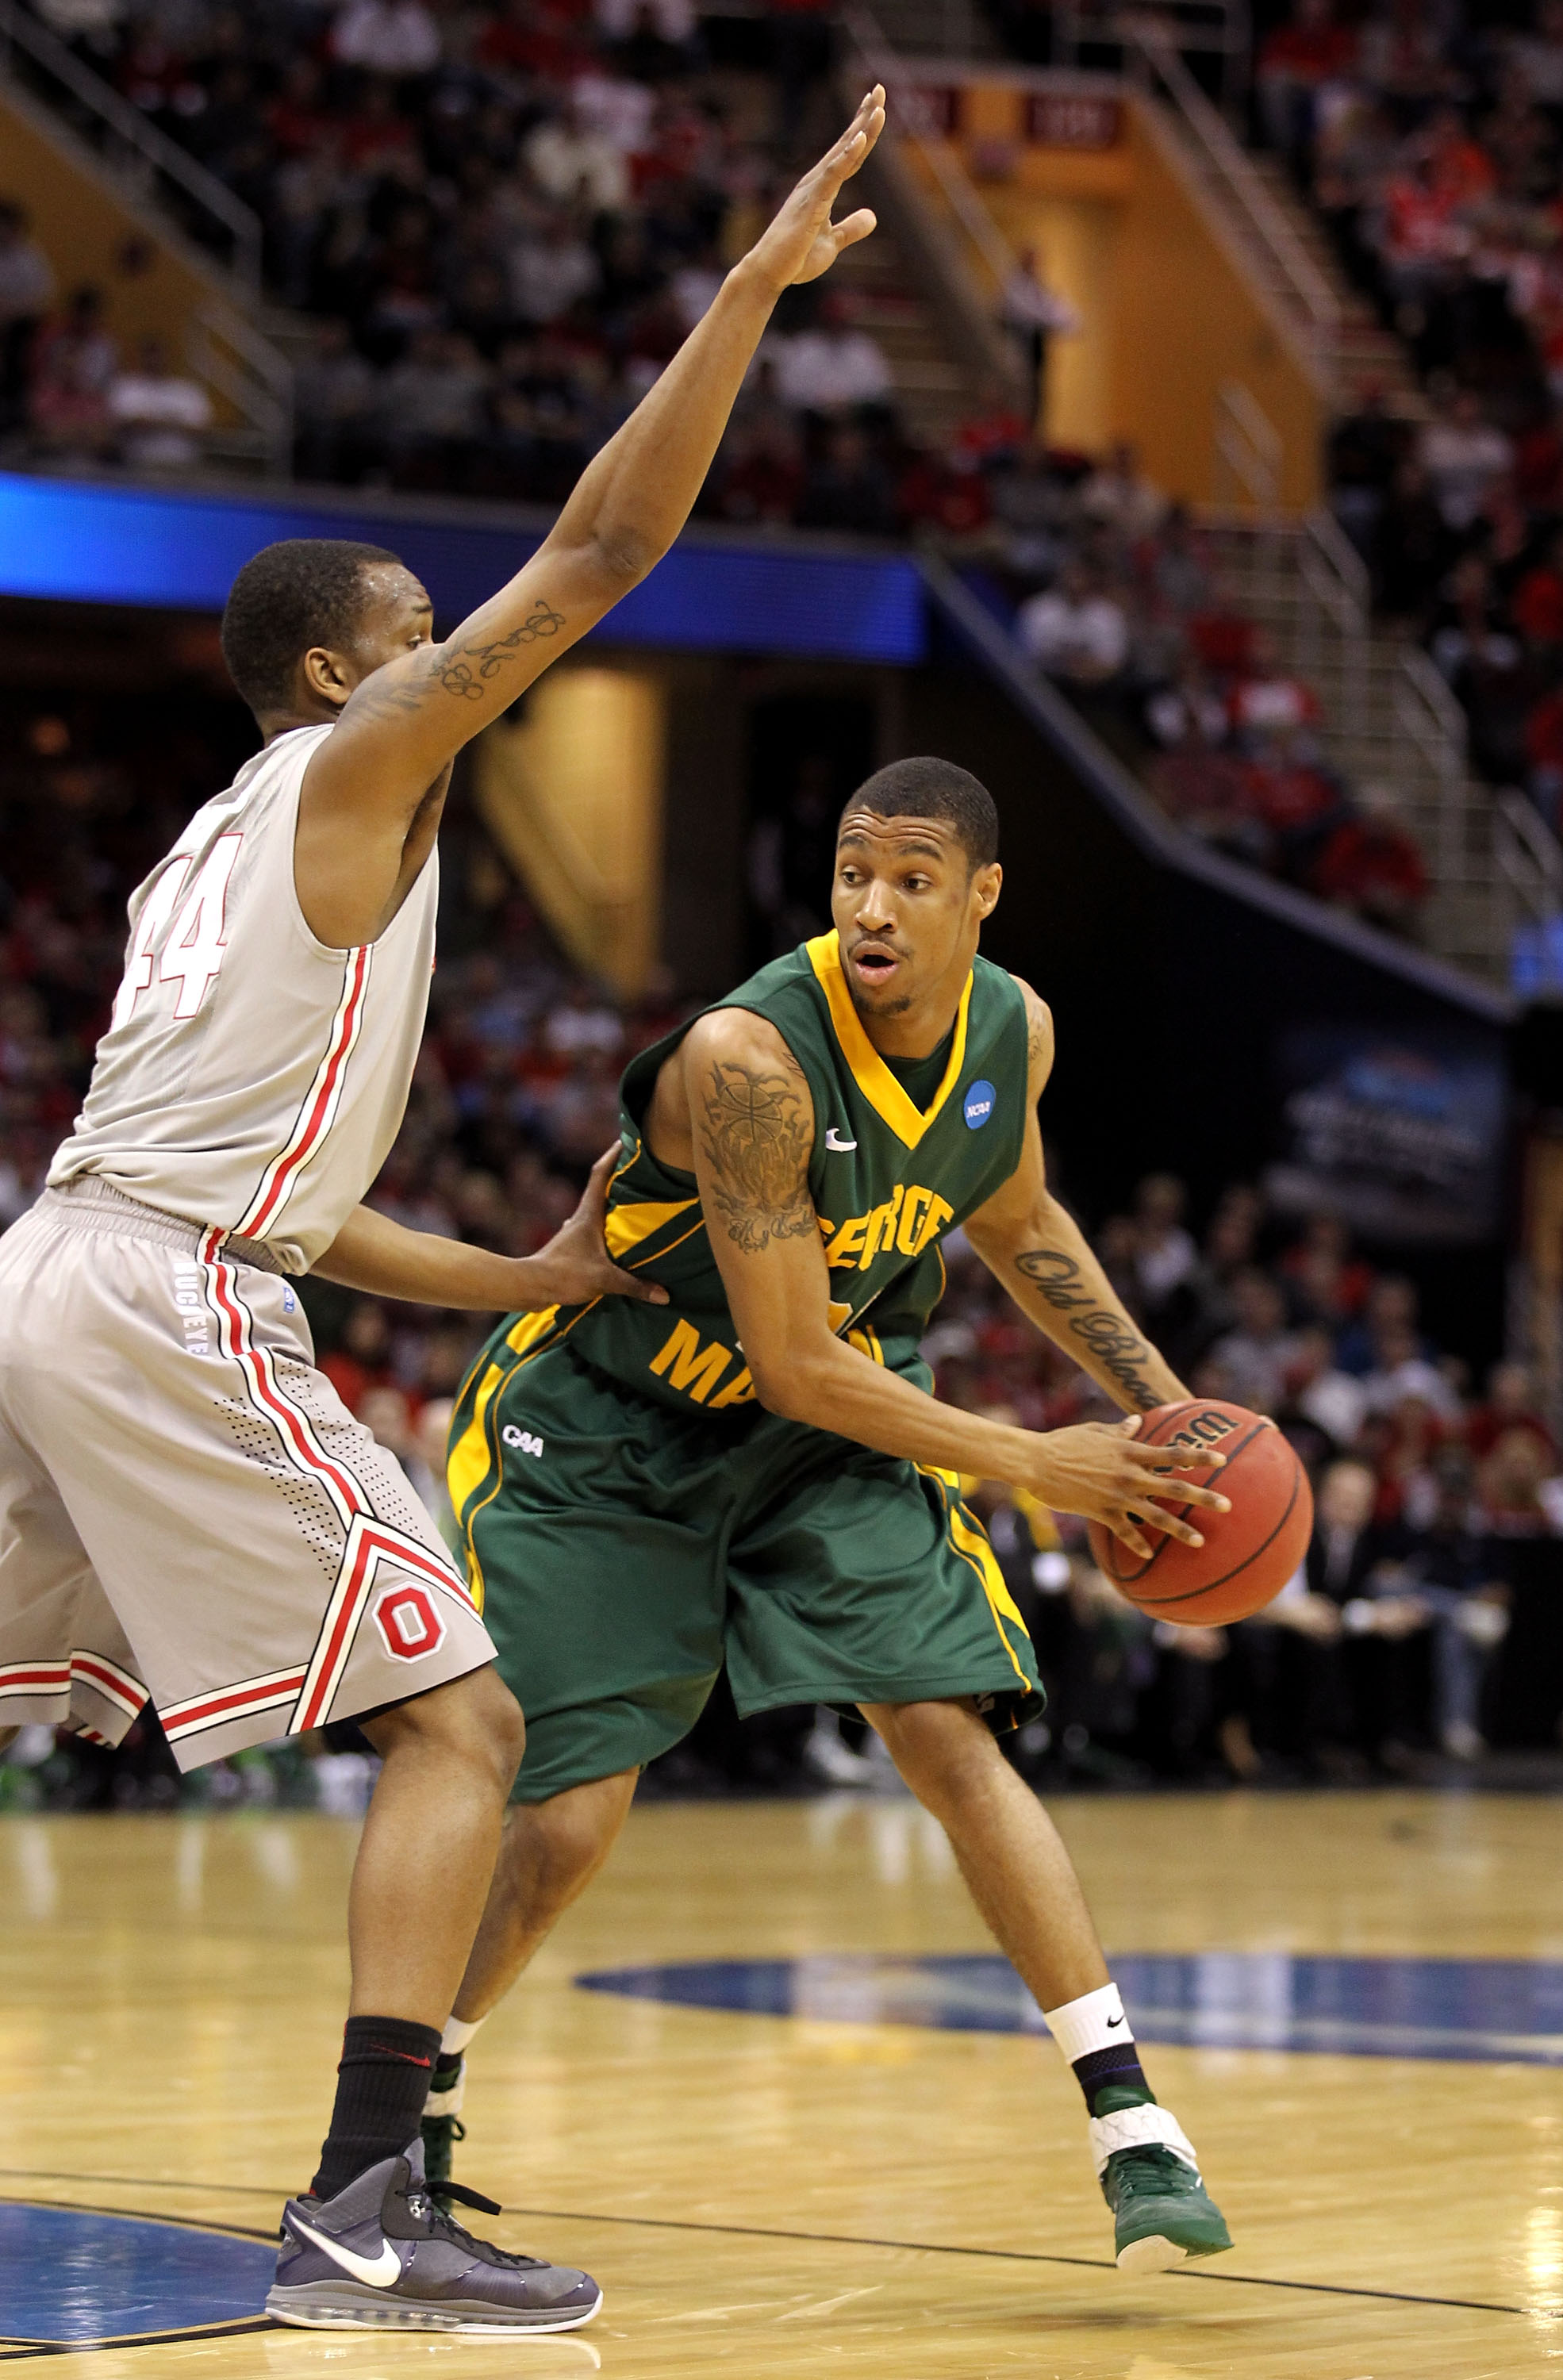 CLEVELAND, OH - MARCH 20: Cam Long #20 of the George Mason Patriots looks to pass against William Buford #44 of the Ohio State Buckeyes during the third of the 2011 NCAA men's basketball tournament at Quicken Loans Arena on March 20, 2011 in Cleveland, Oh